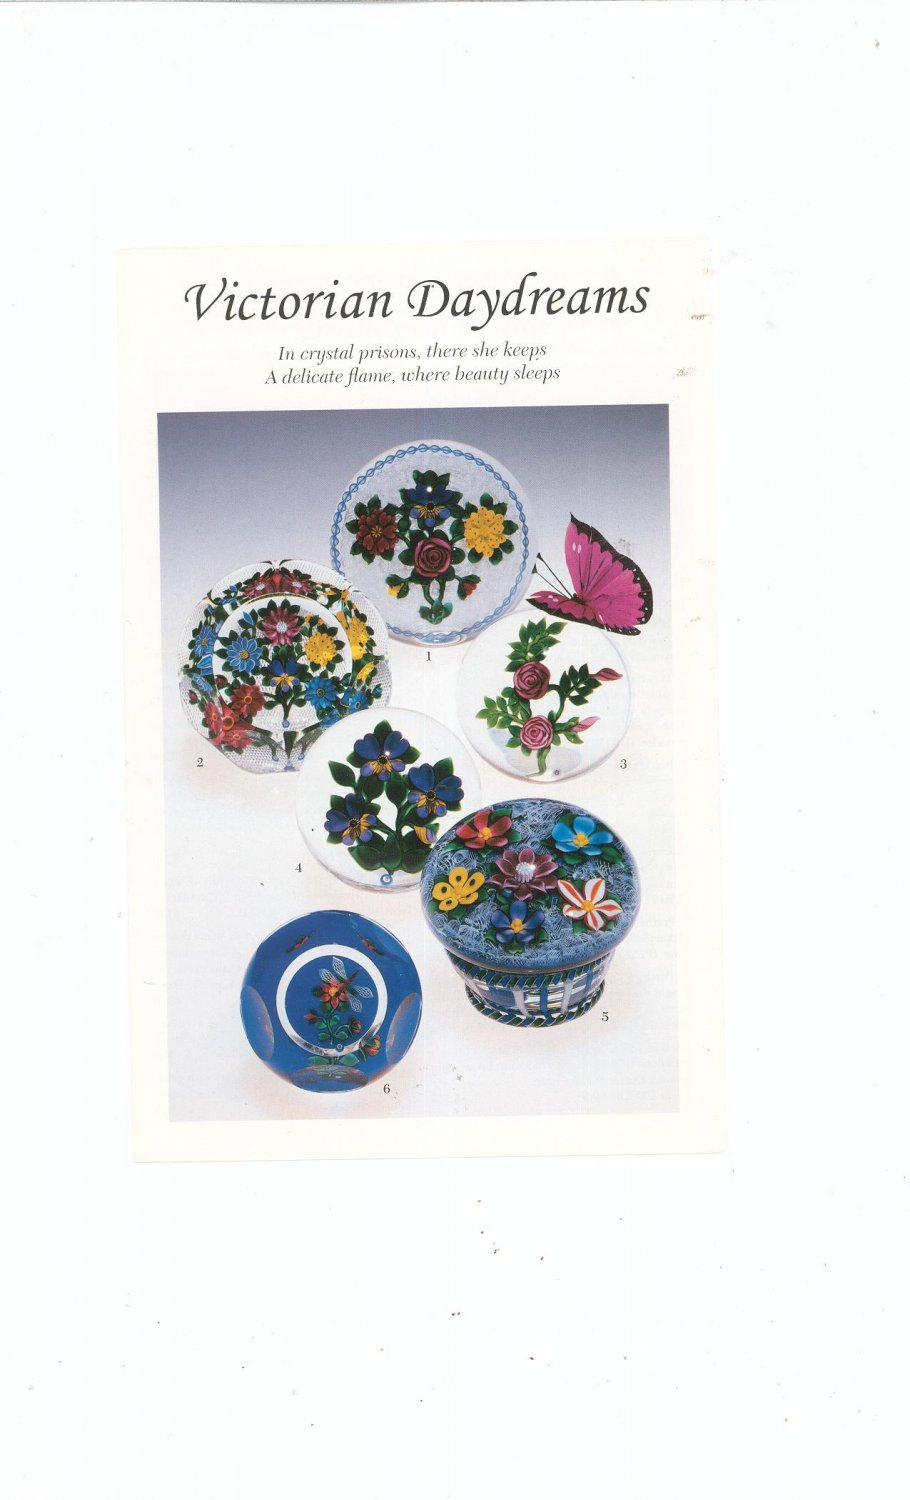 Victorian Daydreams Catalog / Brochure by L. H. Selman Ltd. Paperweights